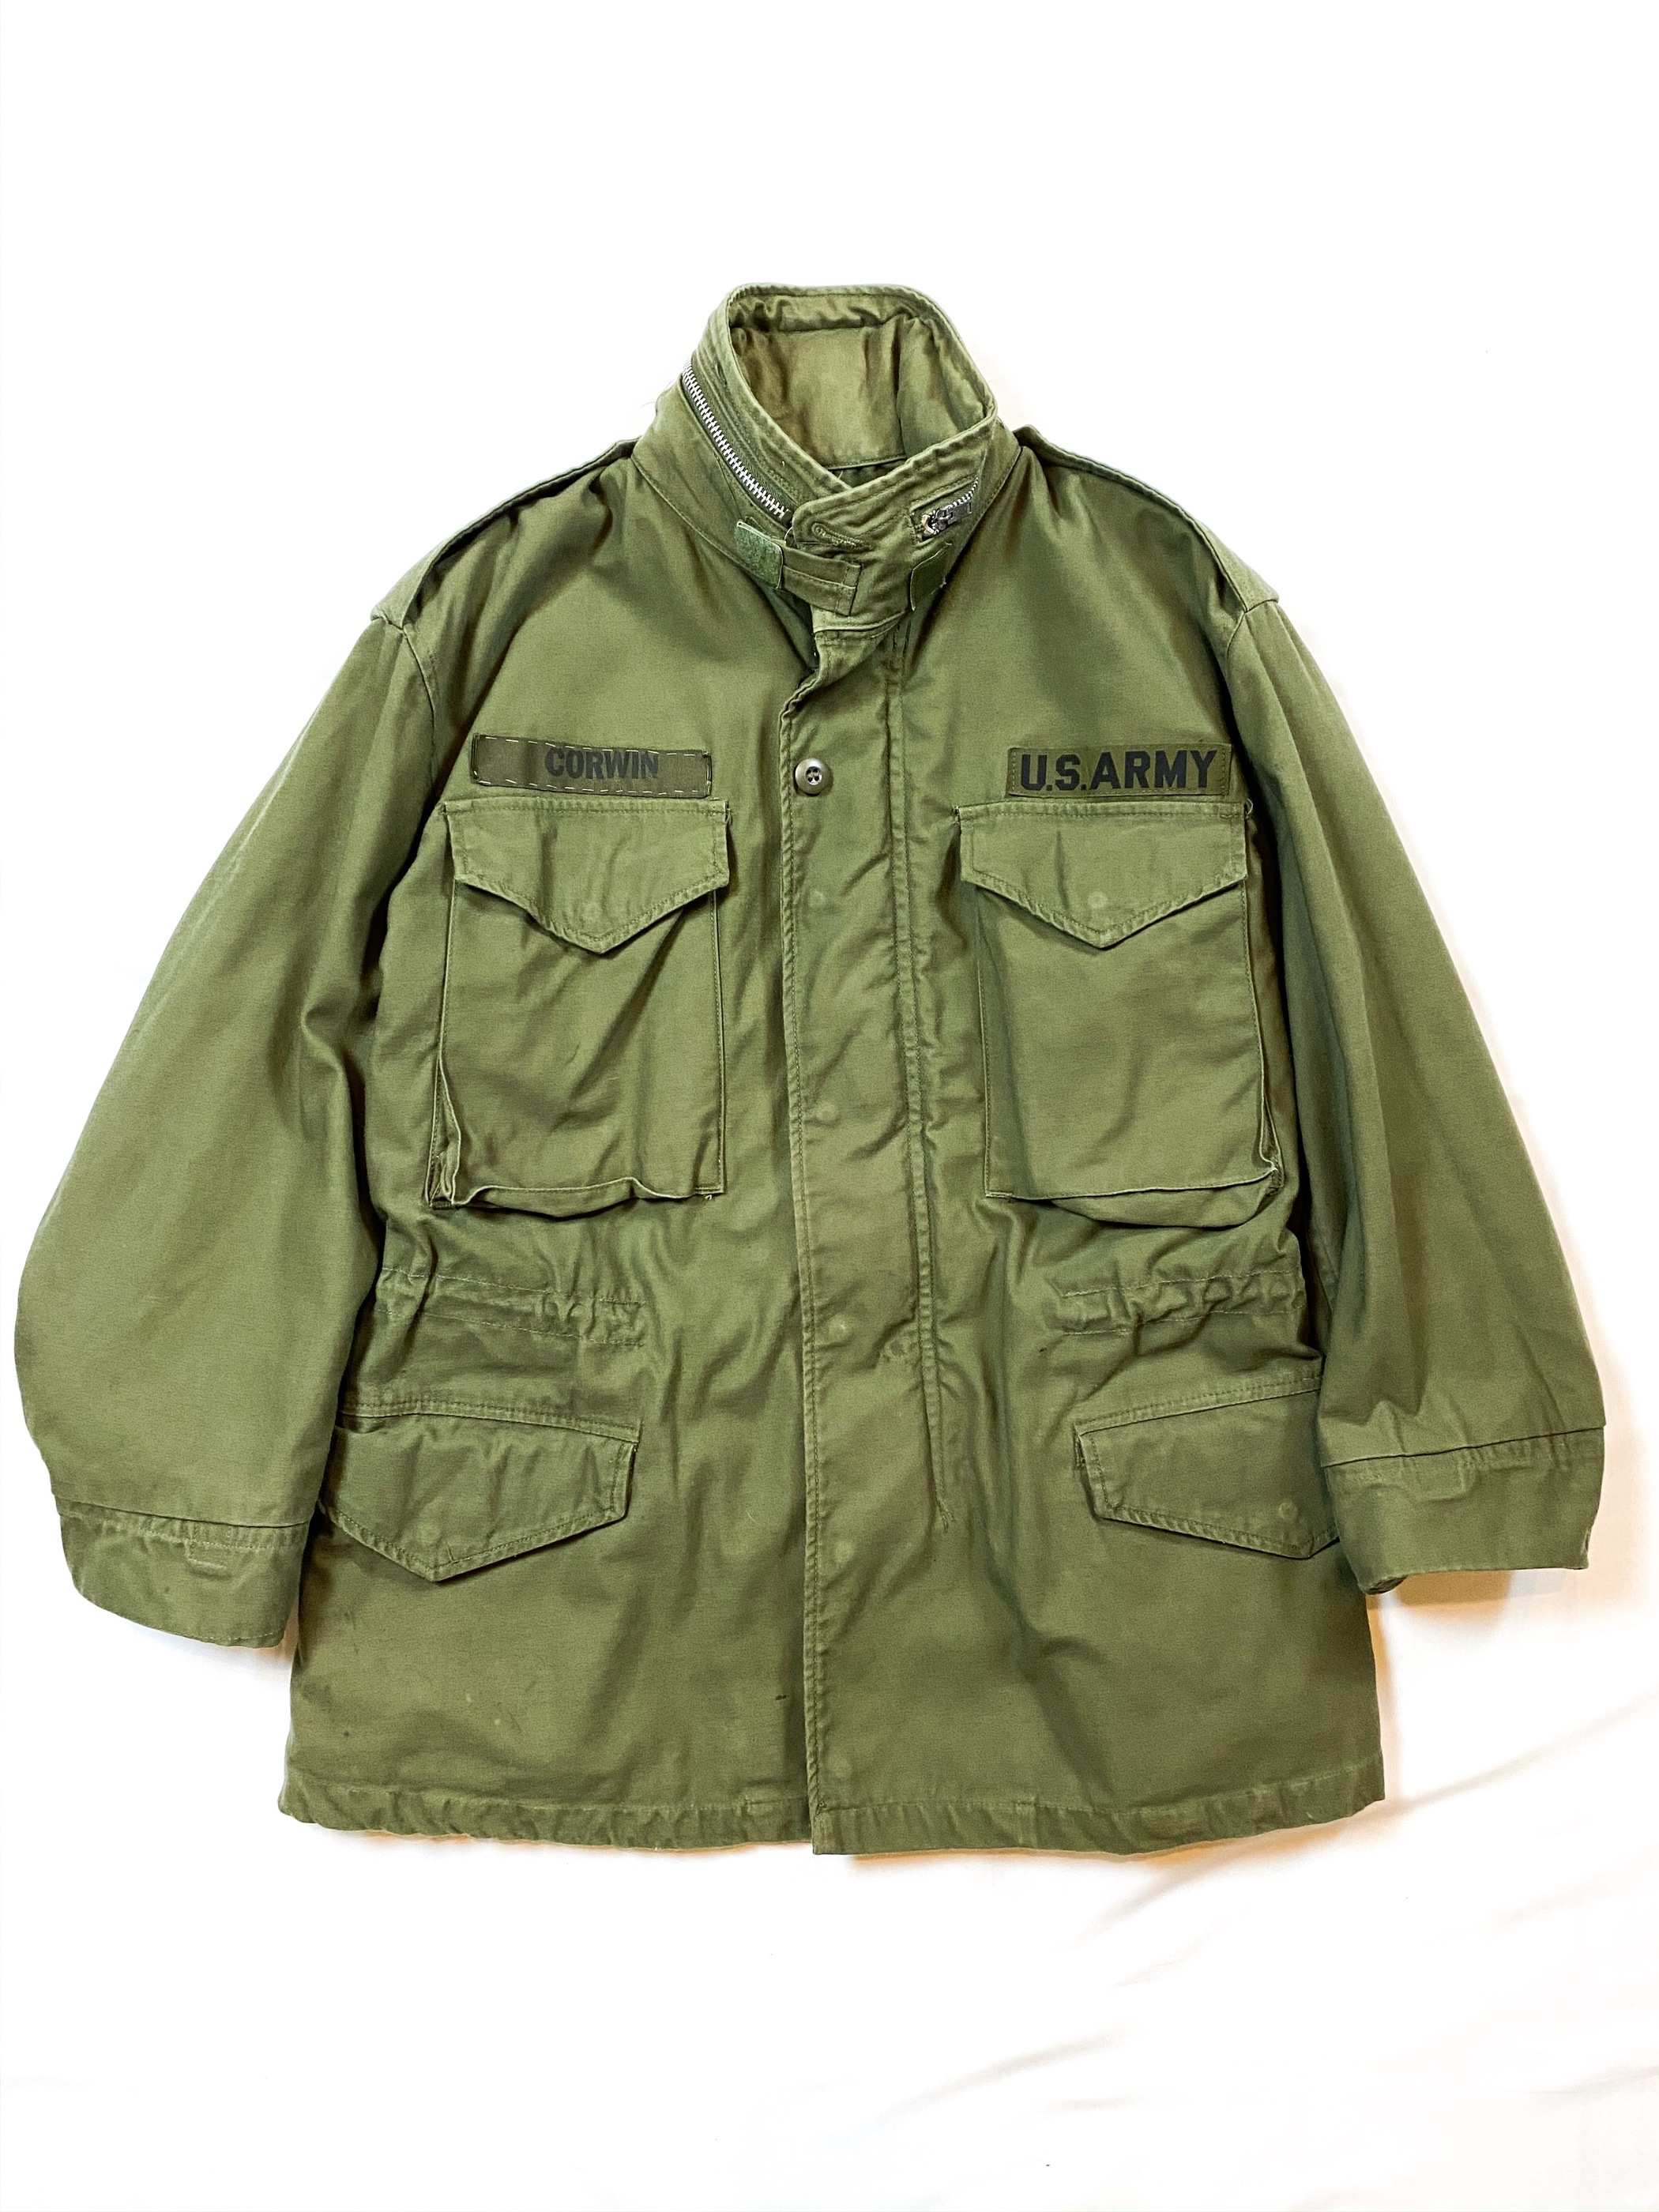 60's U.S.ARMY M-65 field jacket(2nd type)